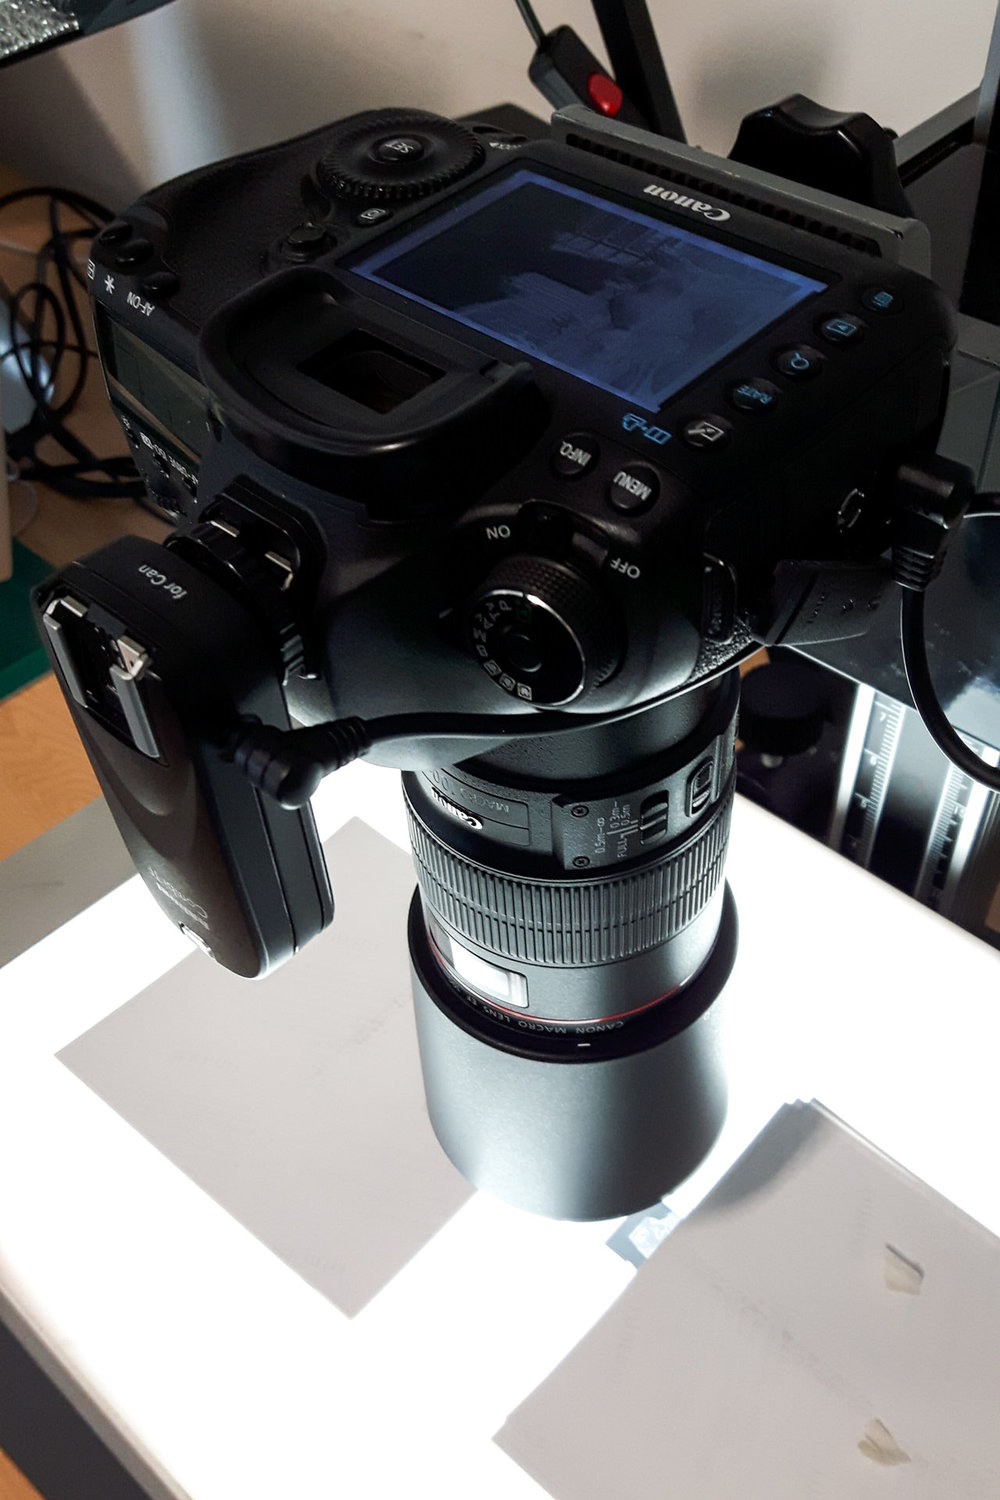 This set up of my camera and macro lens, attached to an adjustable column, gives consistent results when photographing negatives. The lightbox illuminates the negative...